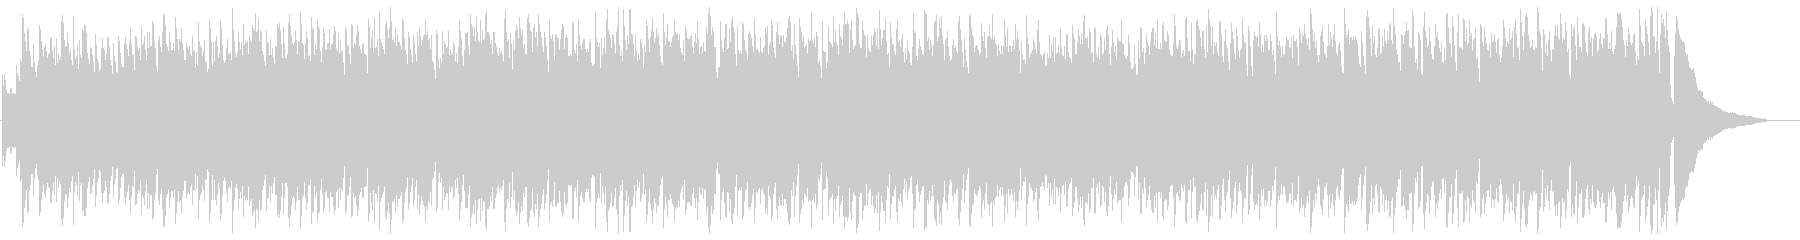 Sometimes it feels like a southern country's unreproduced waveform